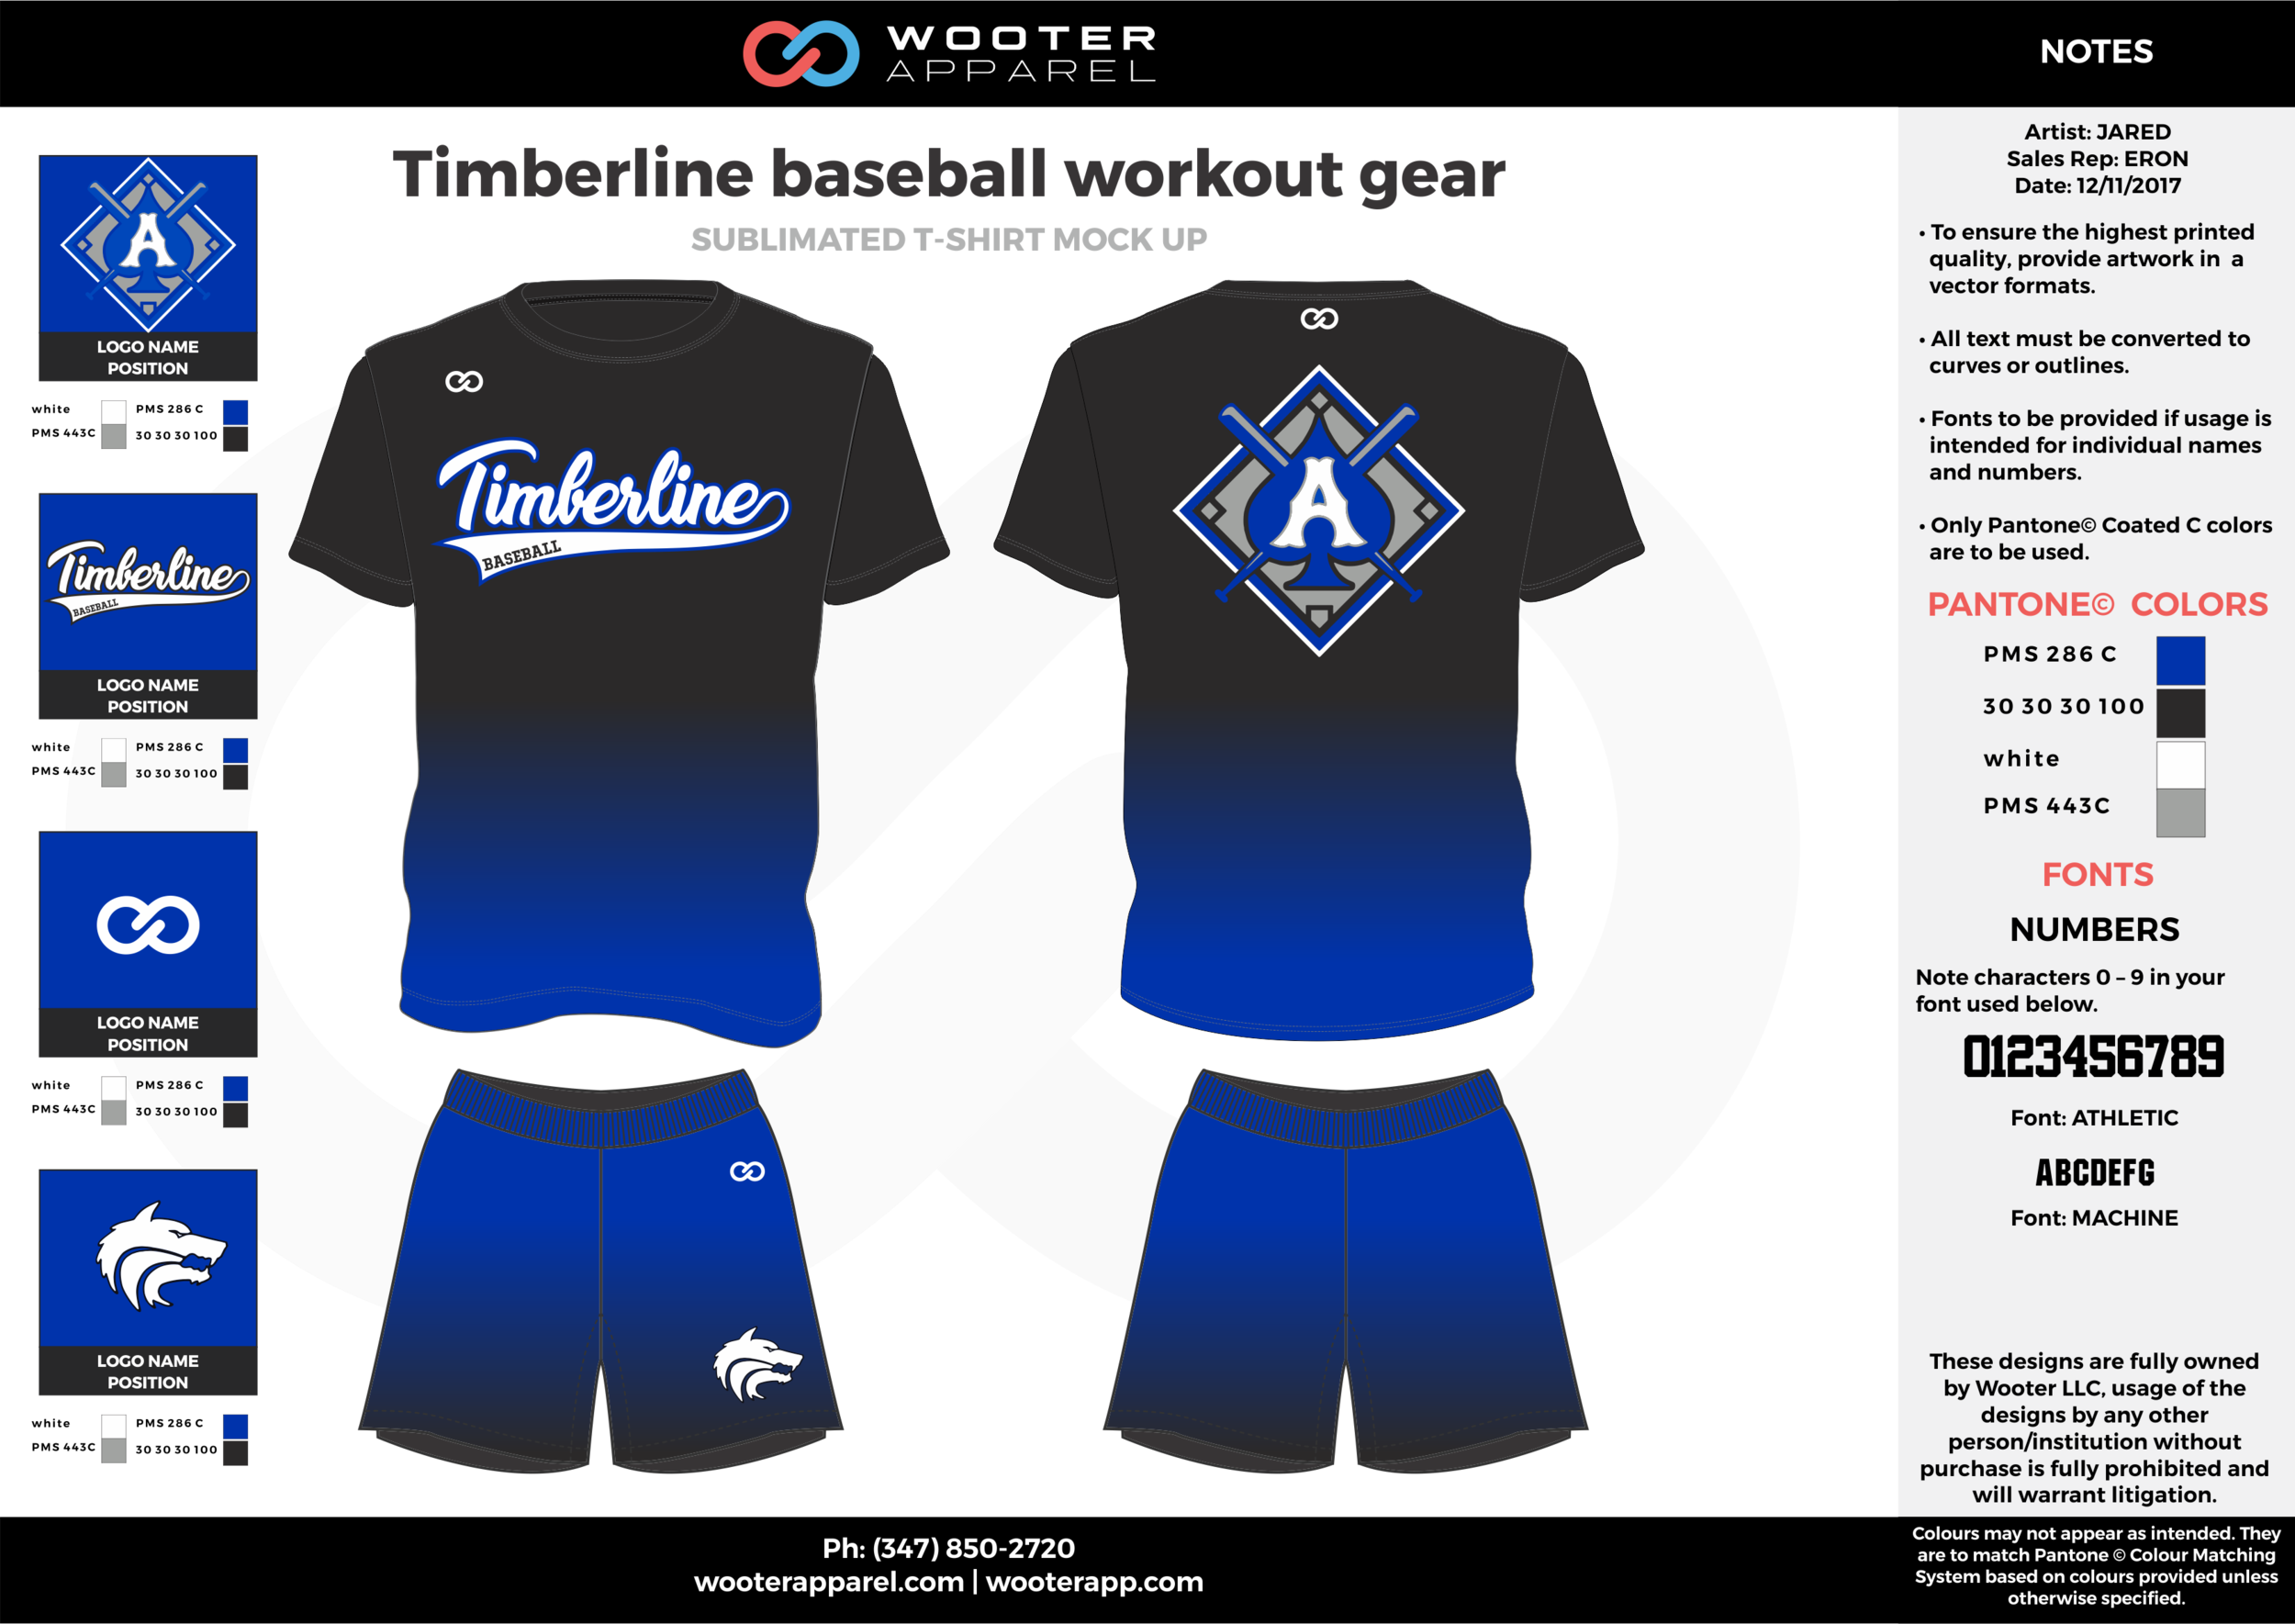 Timberline Baseball Workout Gear blue black gray white baseball uniforms jerseys shorts